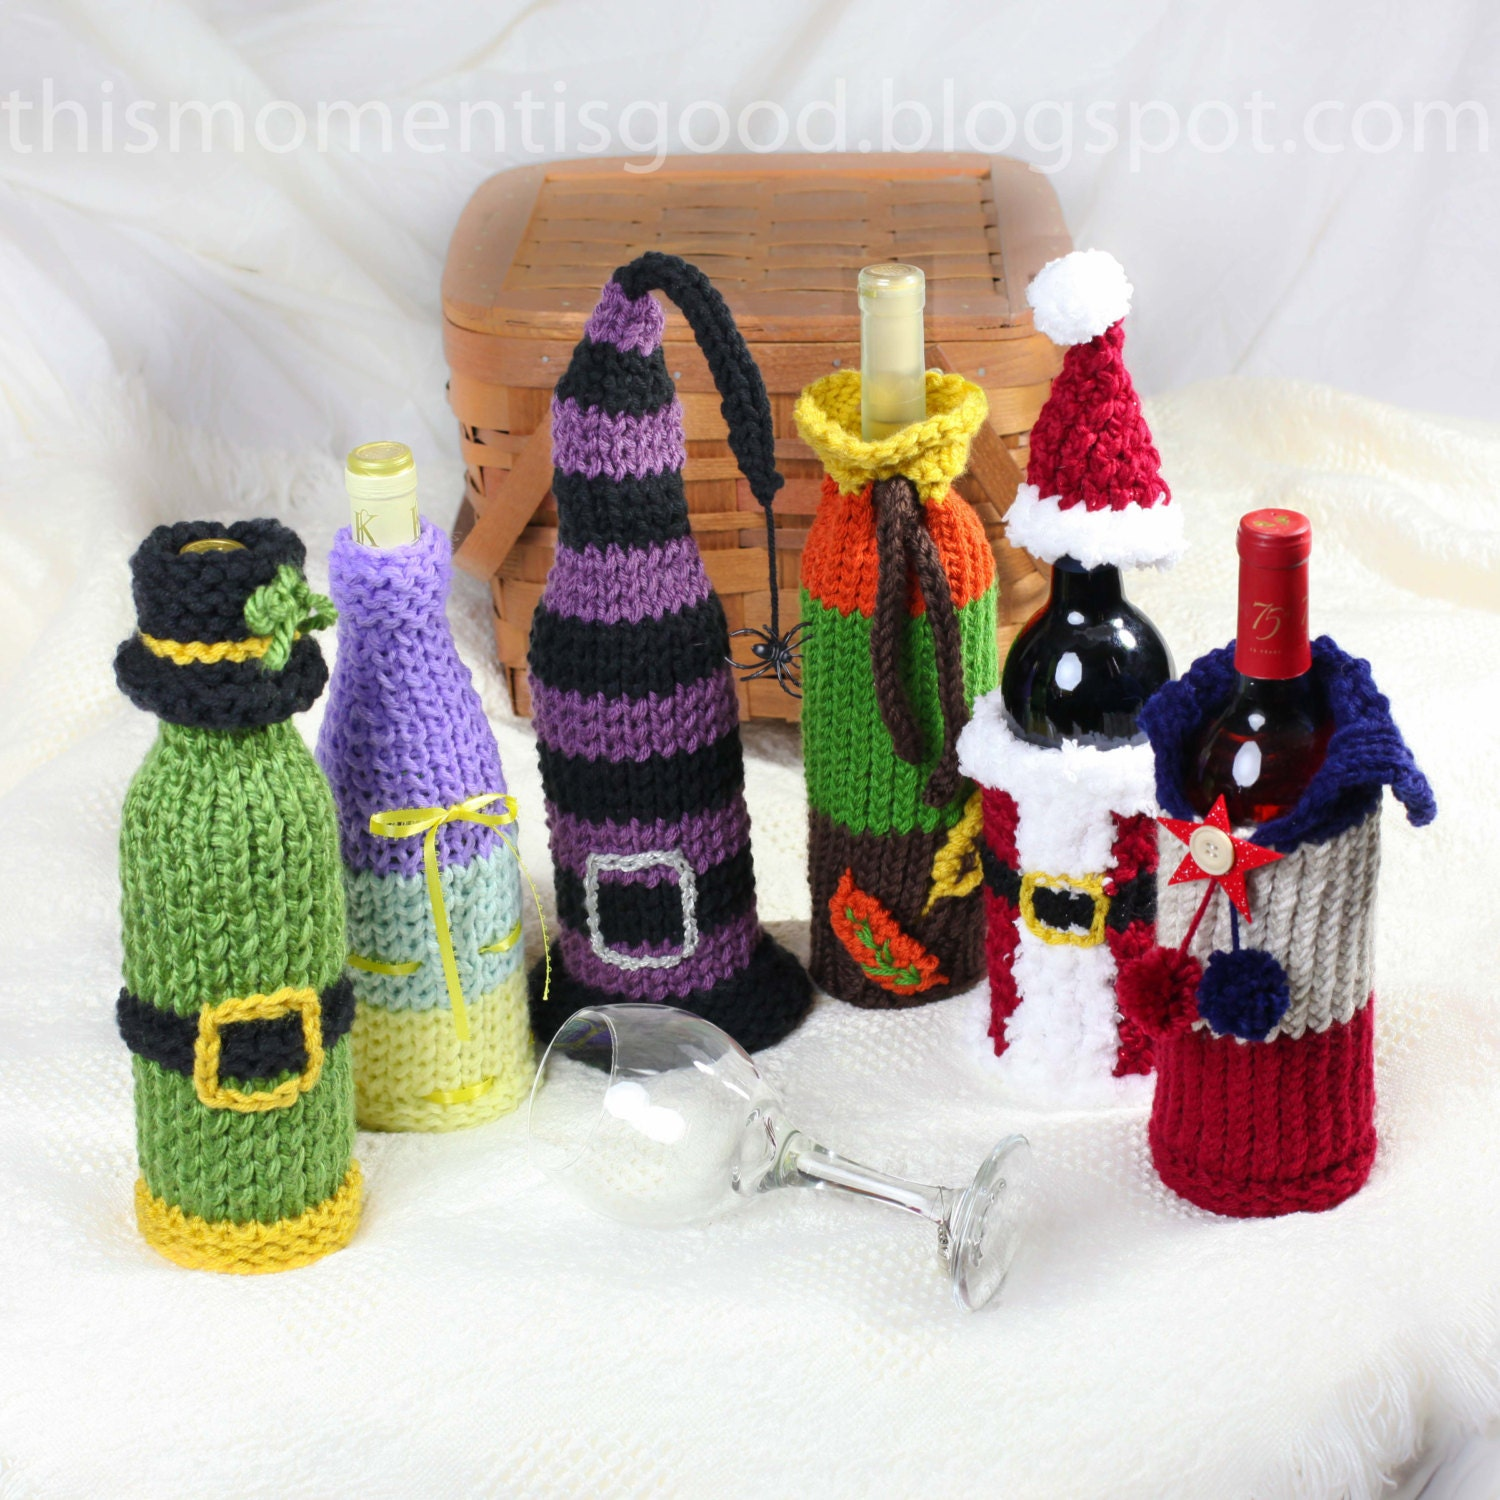 Wine Bottle Covers Loom Knitting Pattern Six Unique Holiday